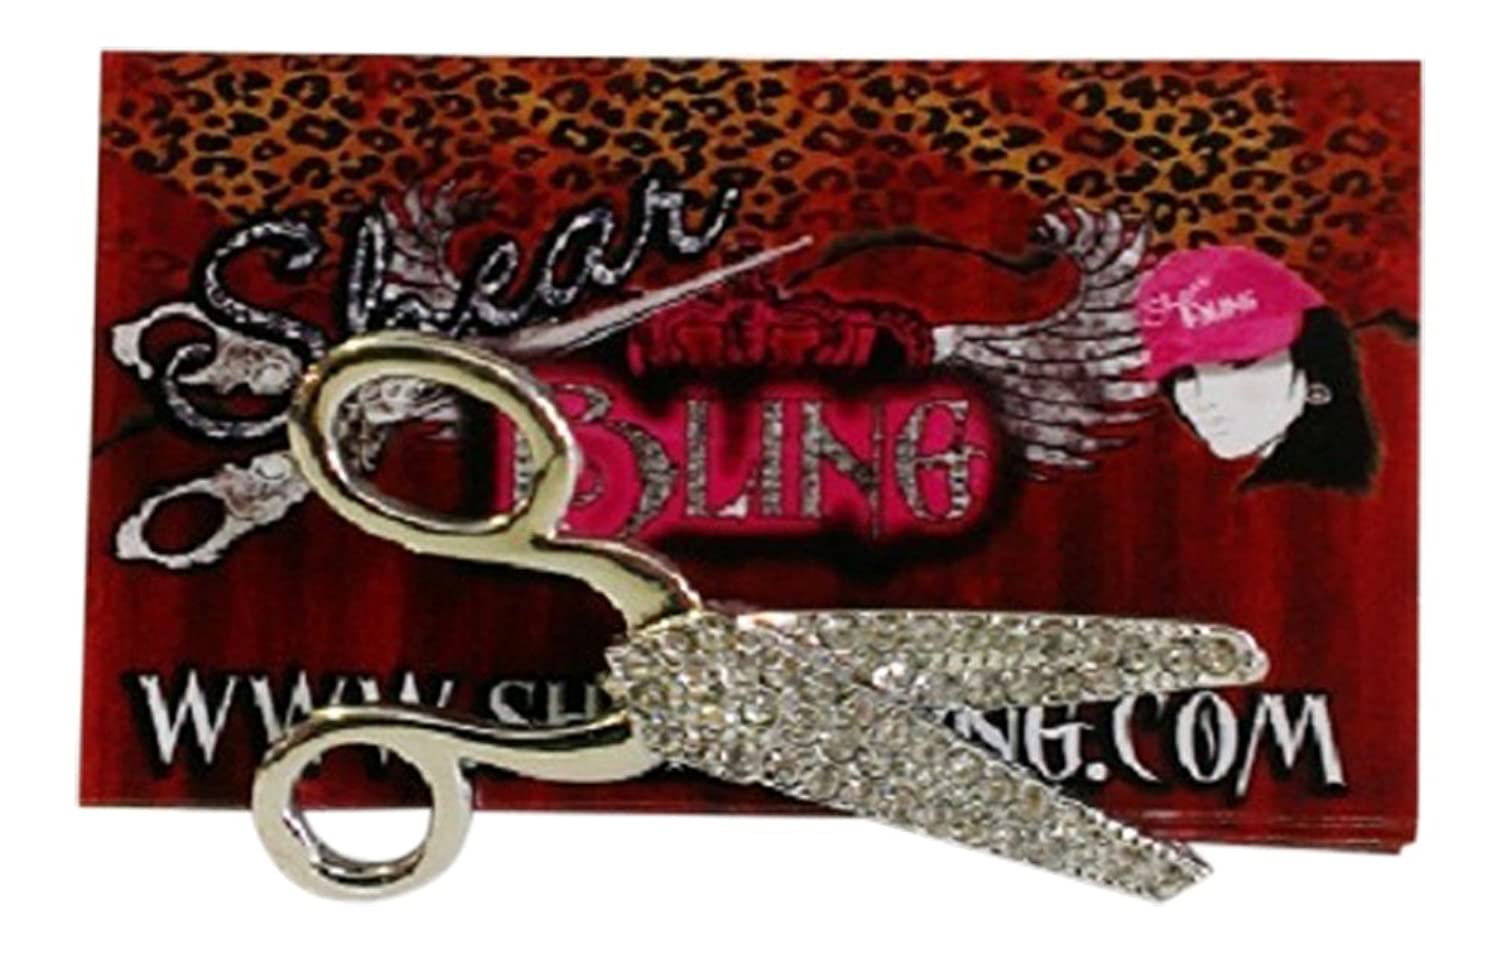 Bling Scissors Appointment/Business Card Holder 85%OFF - www.gcbcri.org